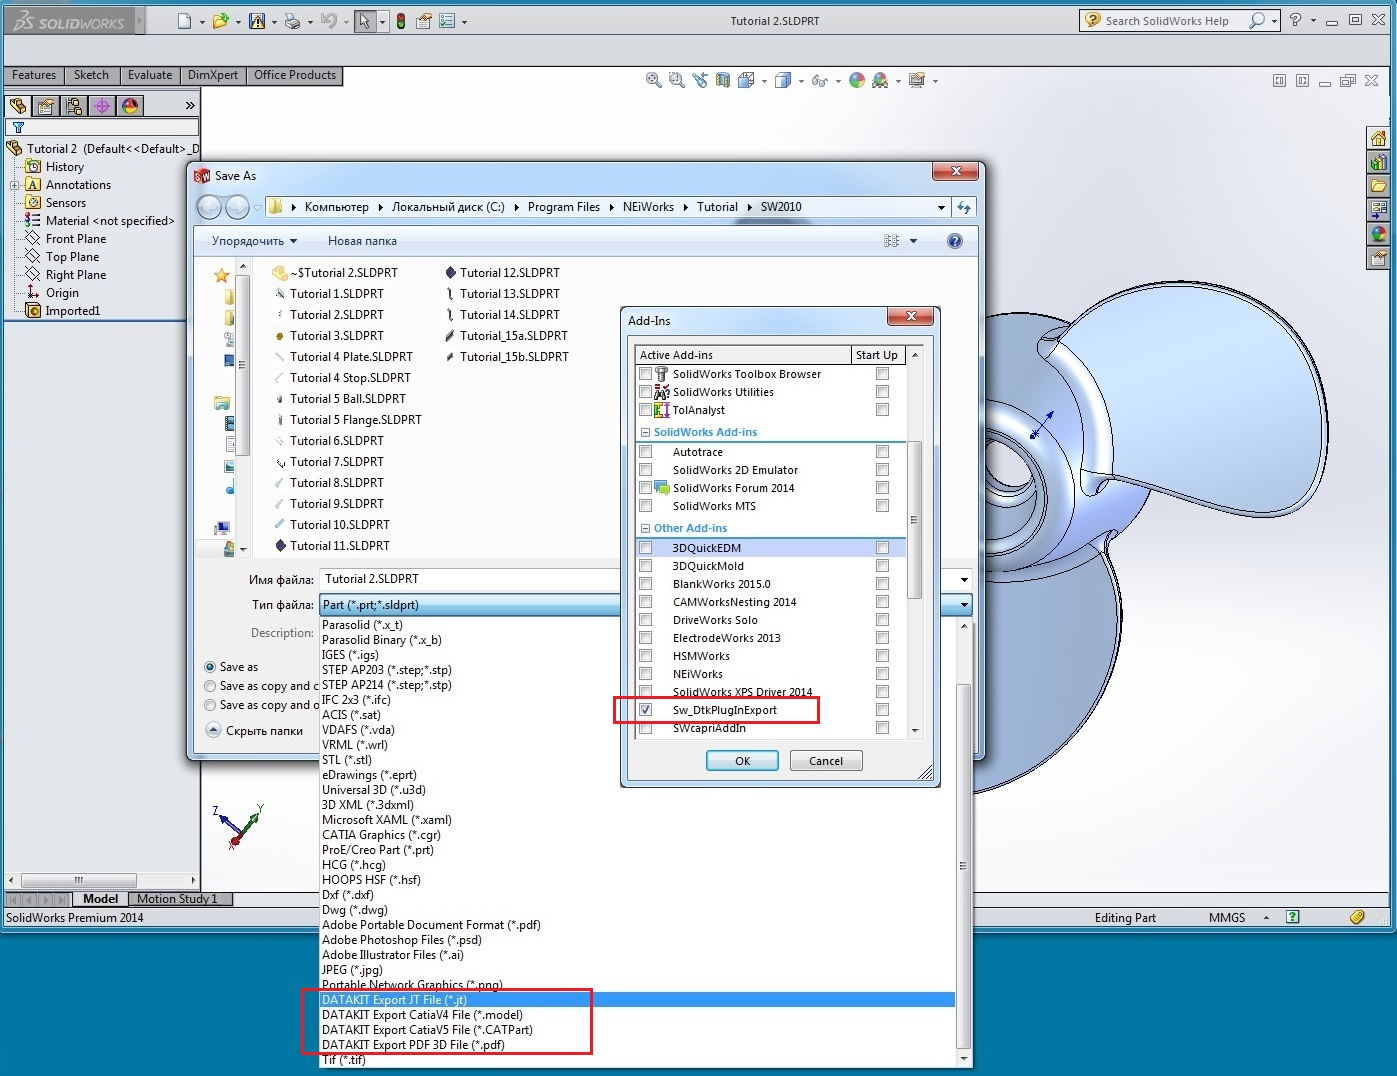 DataKit CrossManager & CAD 2015 Suite